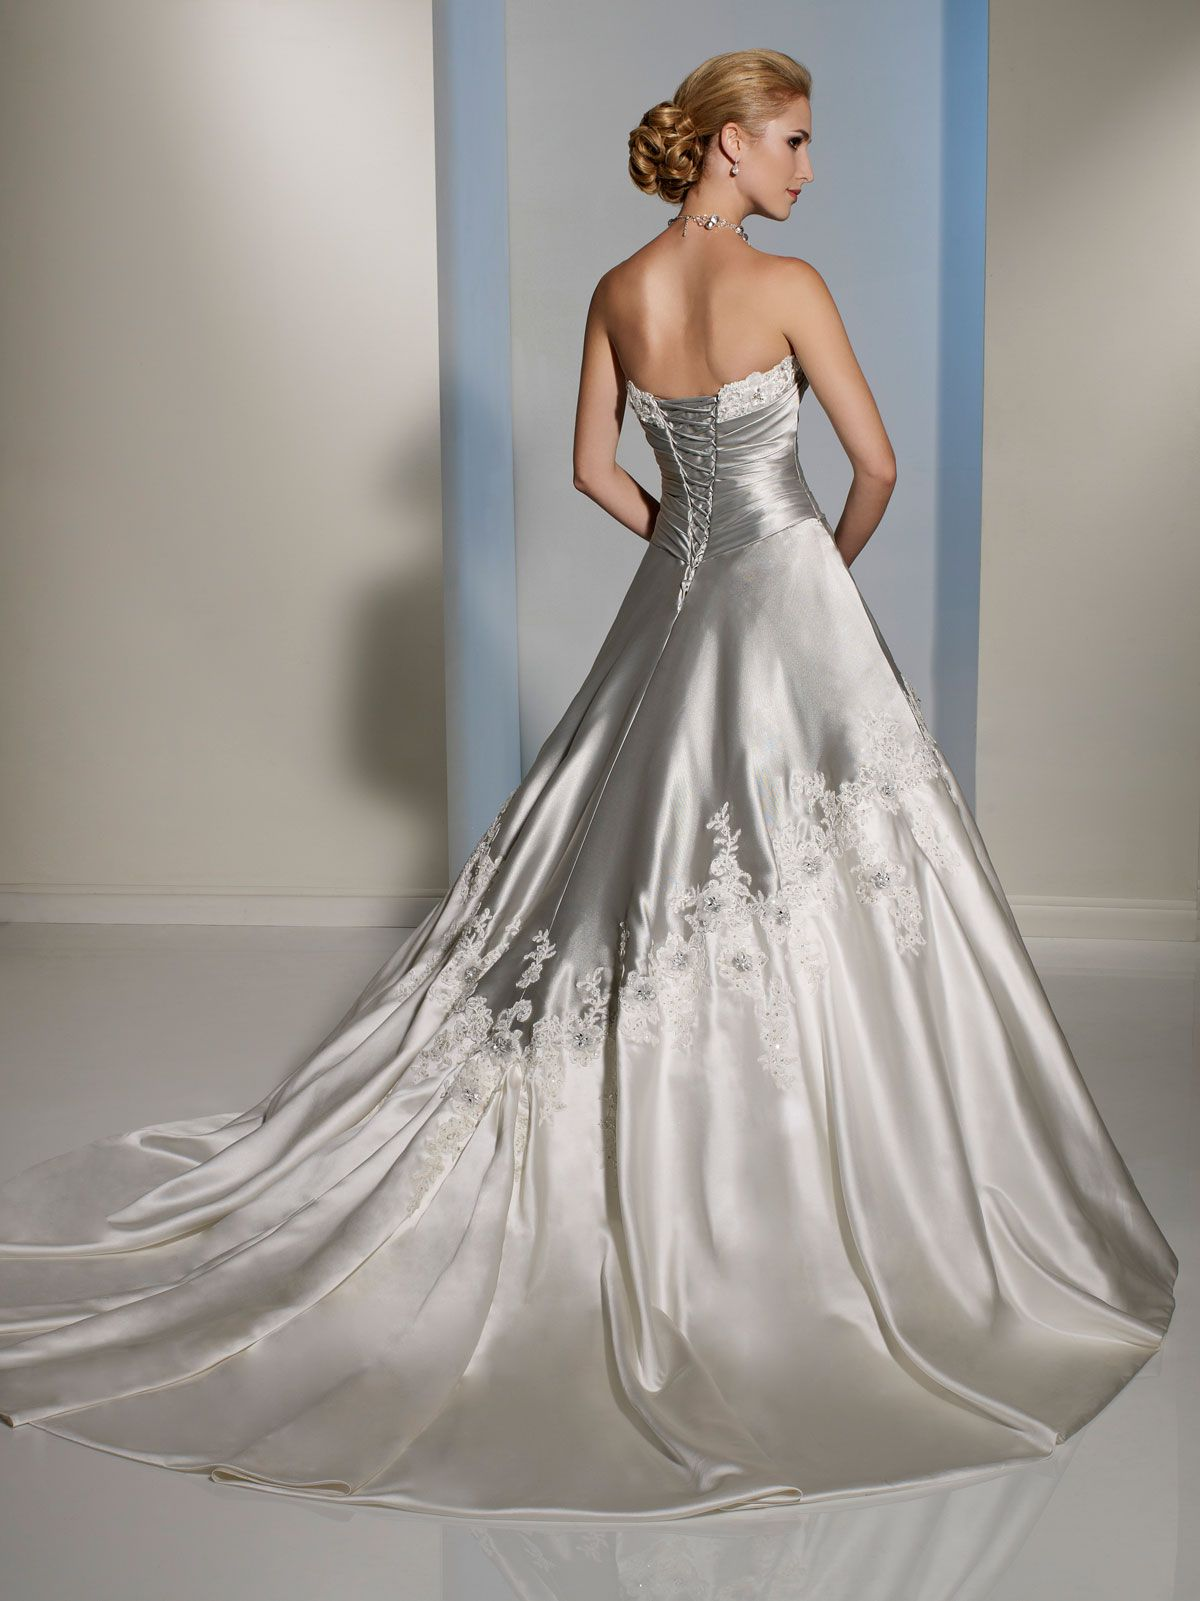 Silver And White D Bodice Wedding Dress